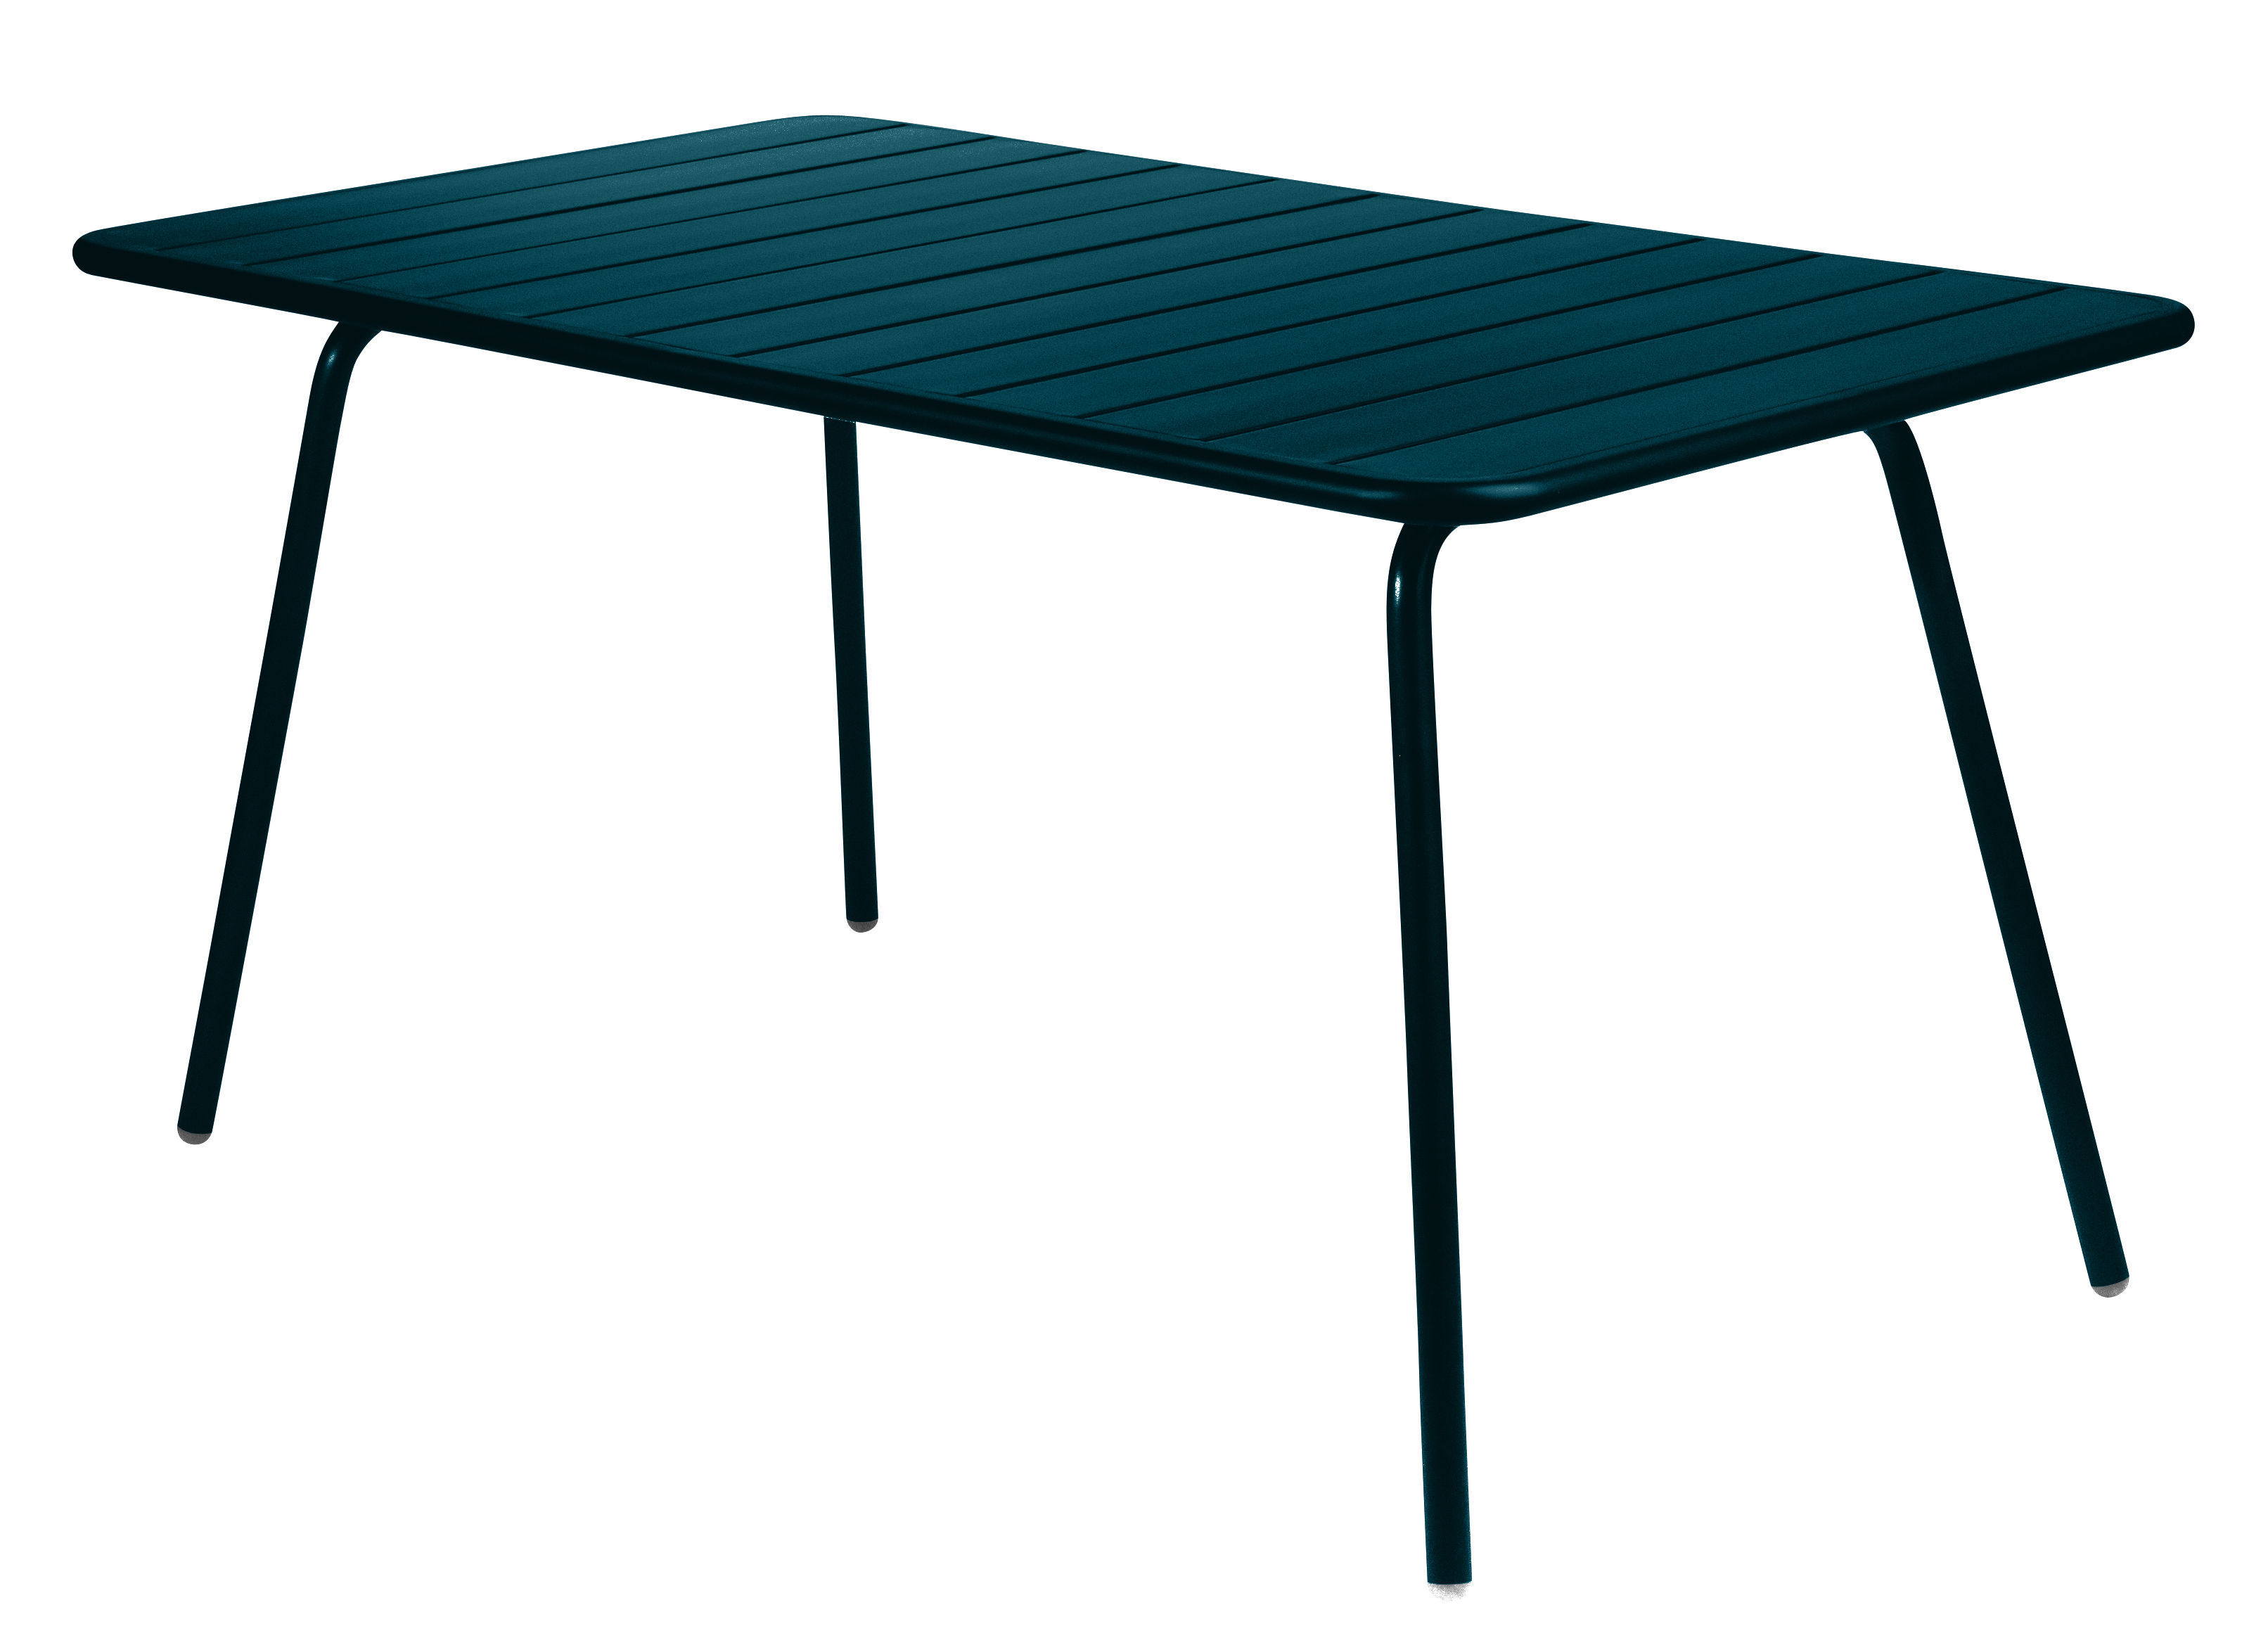 Outdoor - Garden Tables - Luxembourg Rectangular table - / 6 people - 143 x 80 cm - Aluminium by Fermob - Acapulco blue - Lacquered aluminium